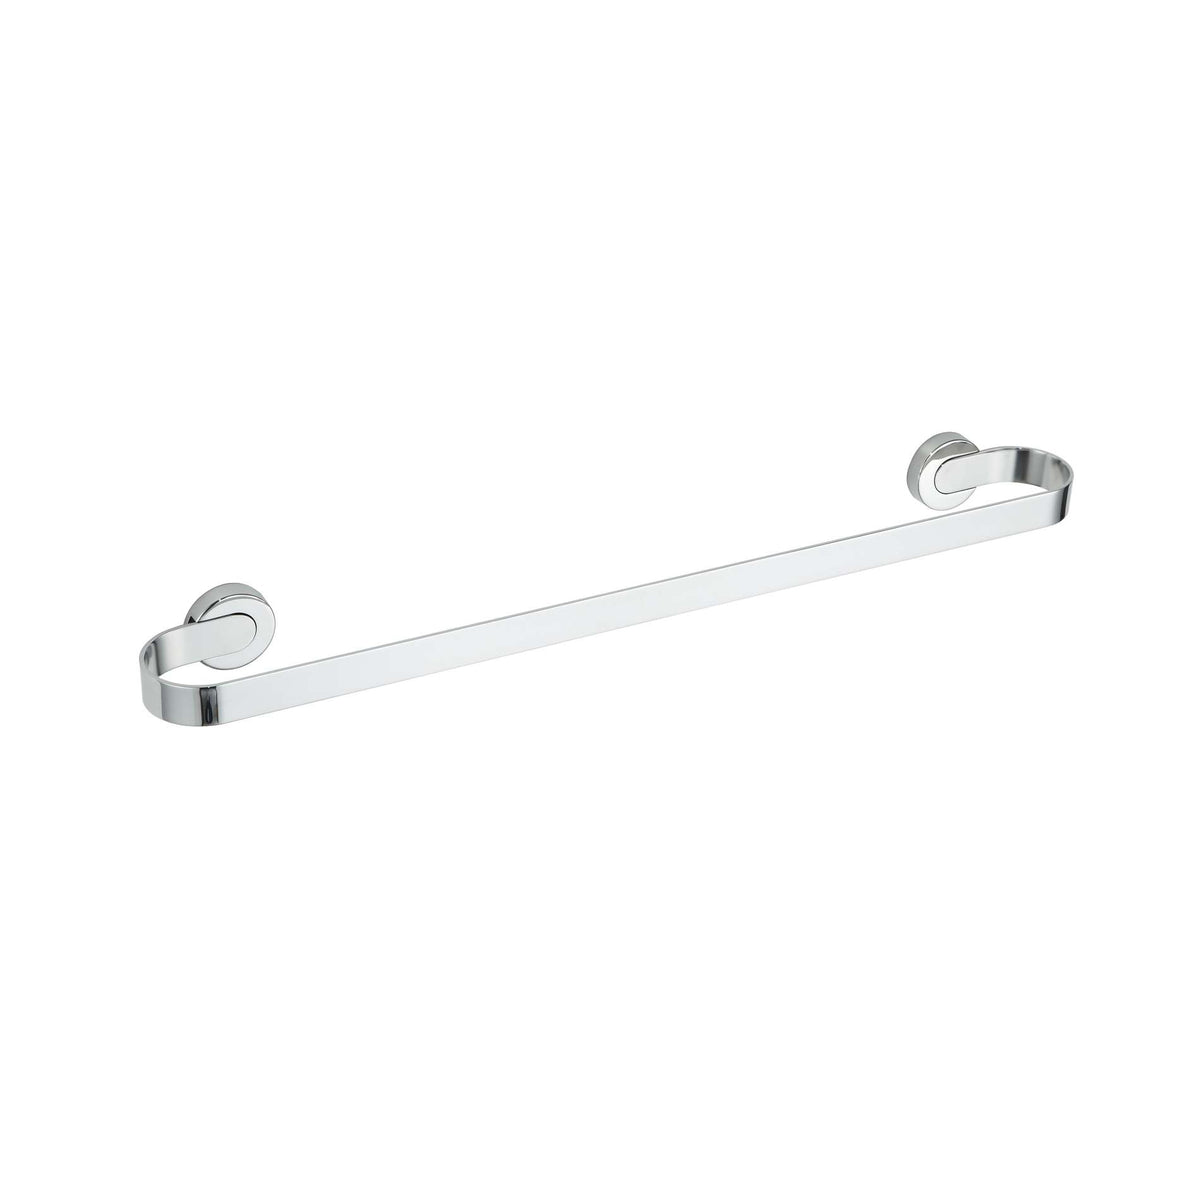 Milo Contemporary Stainless Steel Towel Bar, Chrome